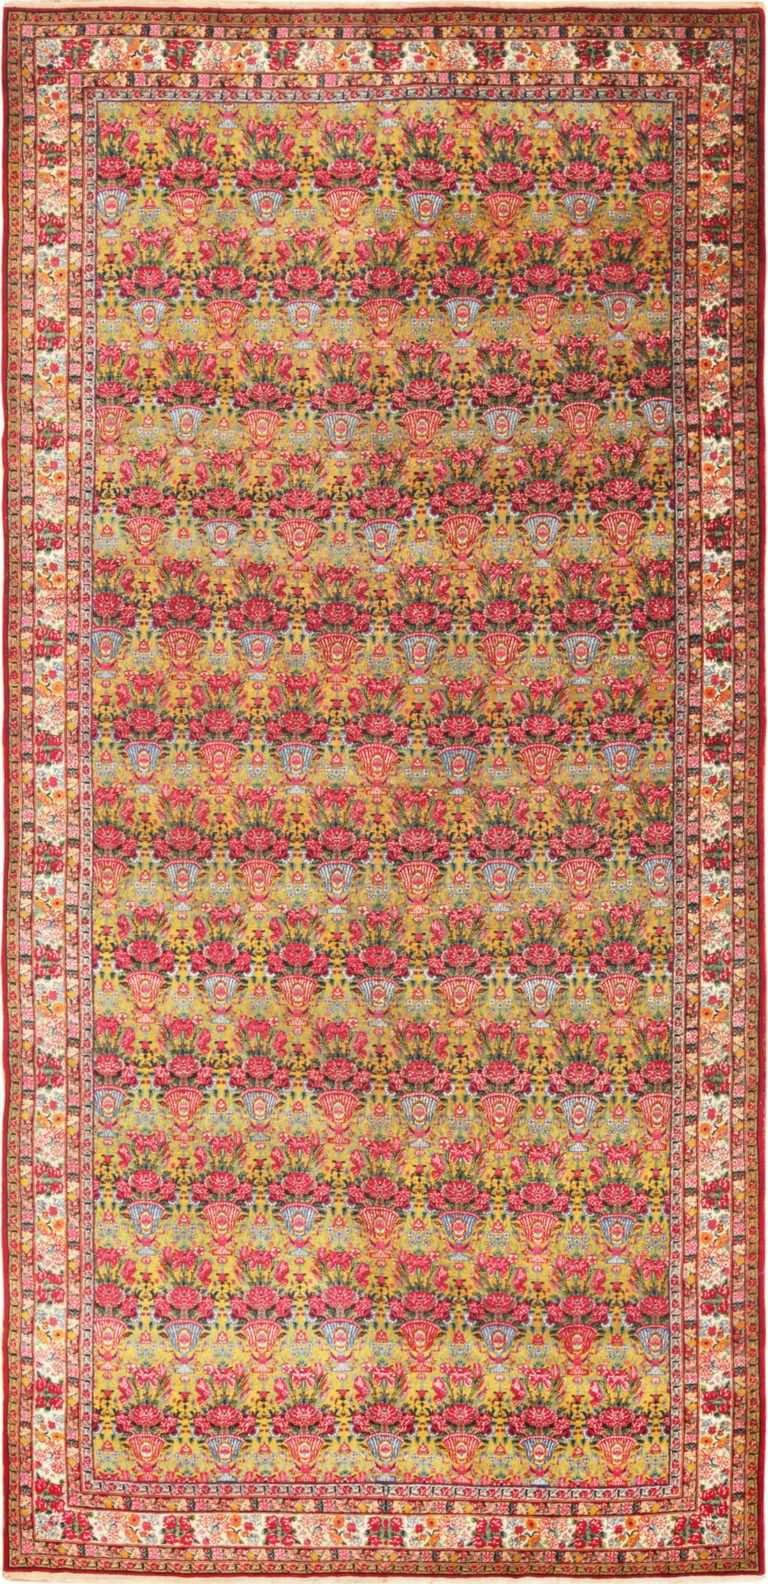 Full view Antique Persian Kerman rug 70166 by Nazmiyal